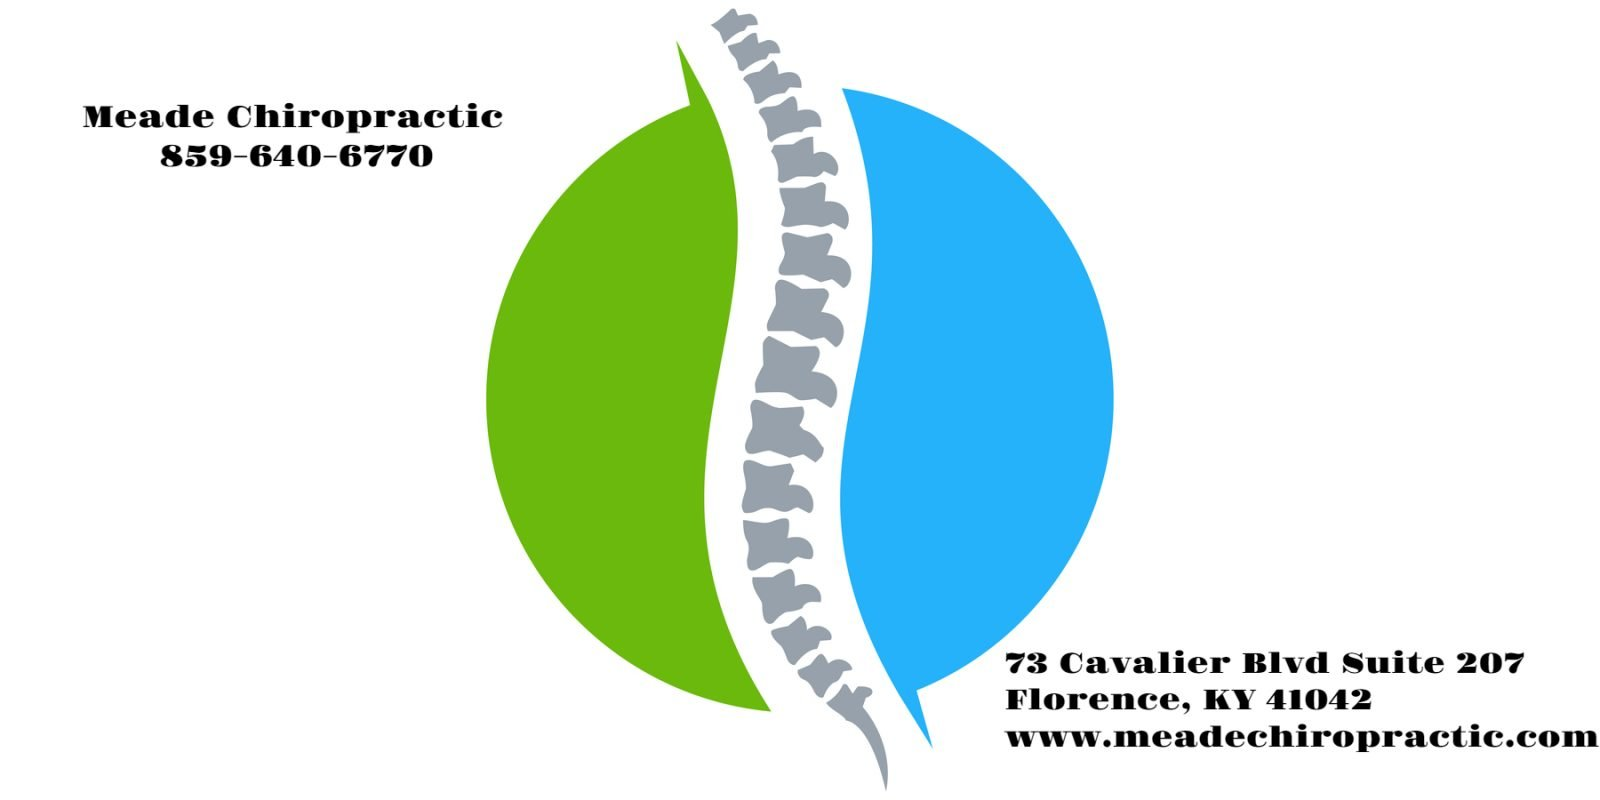 Chiropractors in Florence, KY 41042